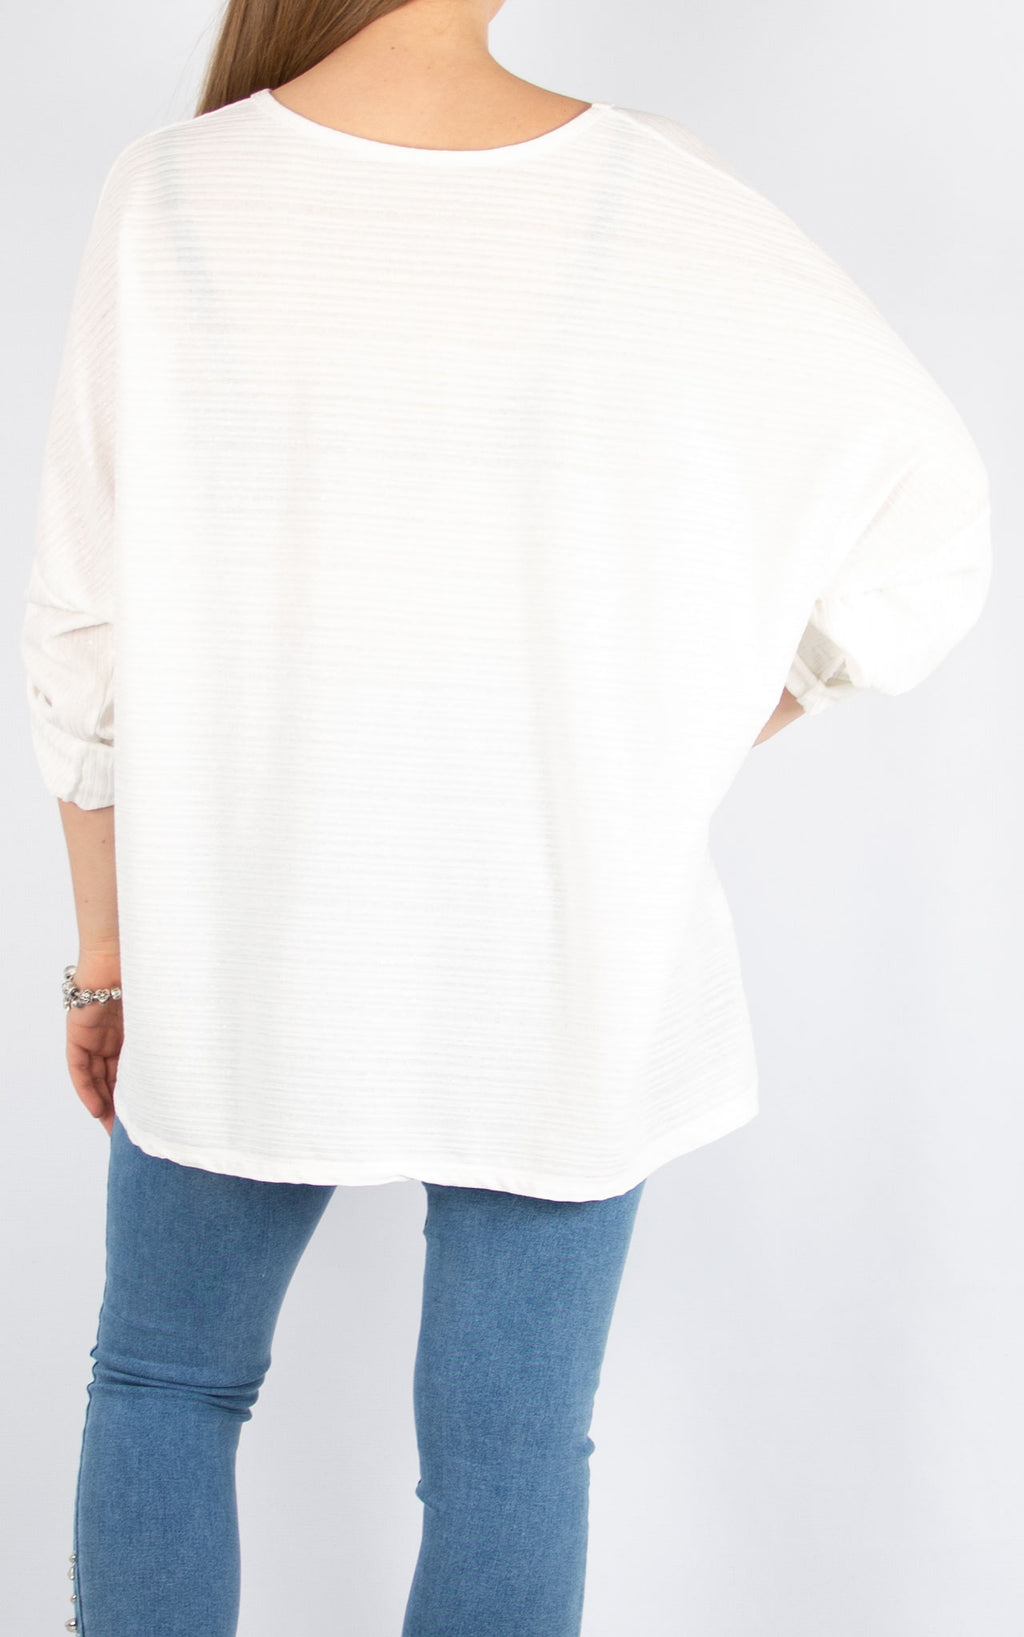 White Button Up Sleeve | Made in Italy